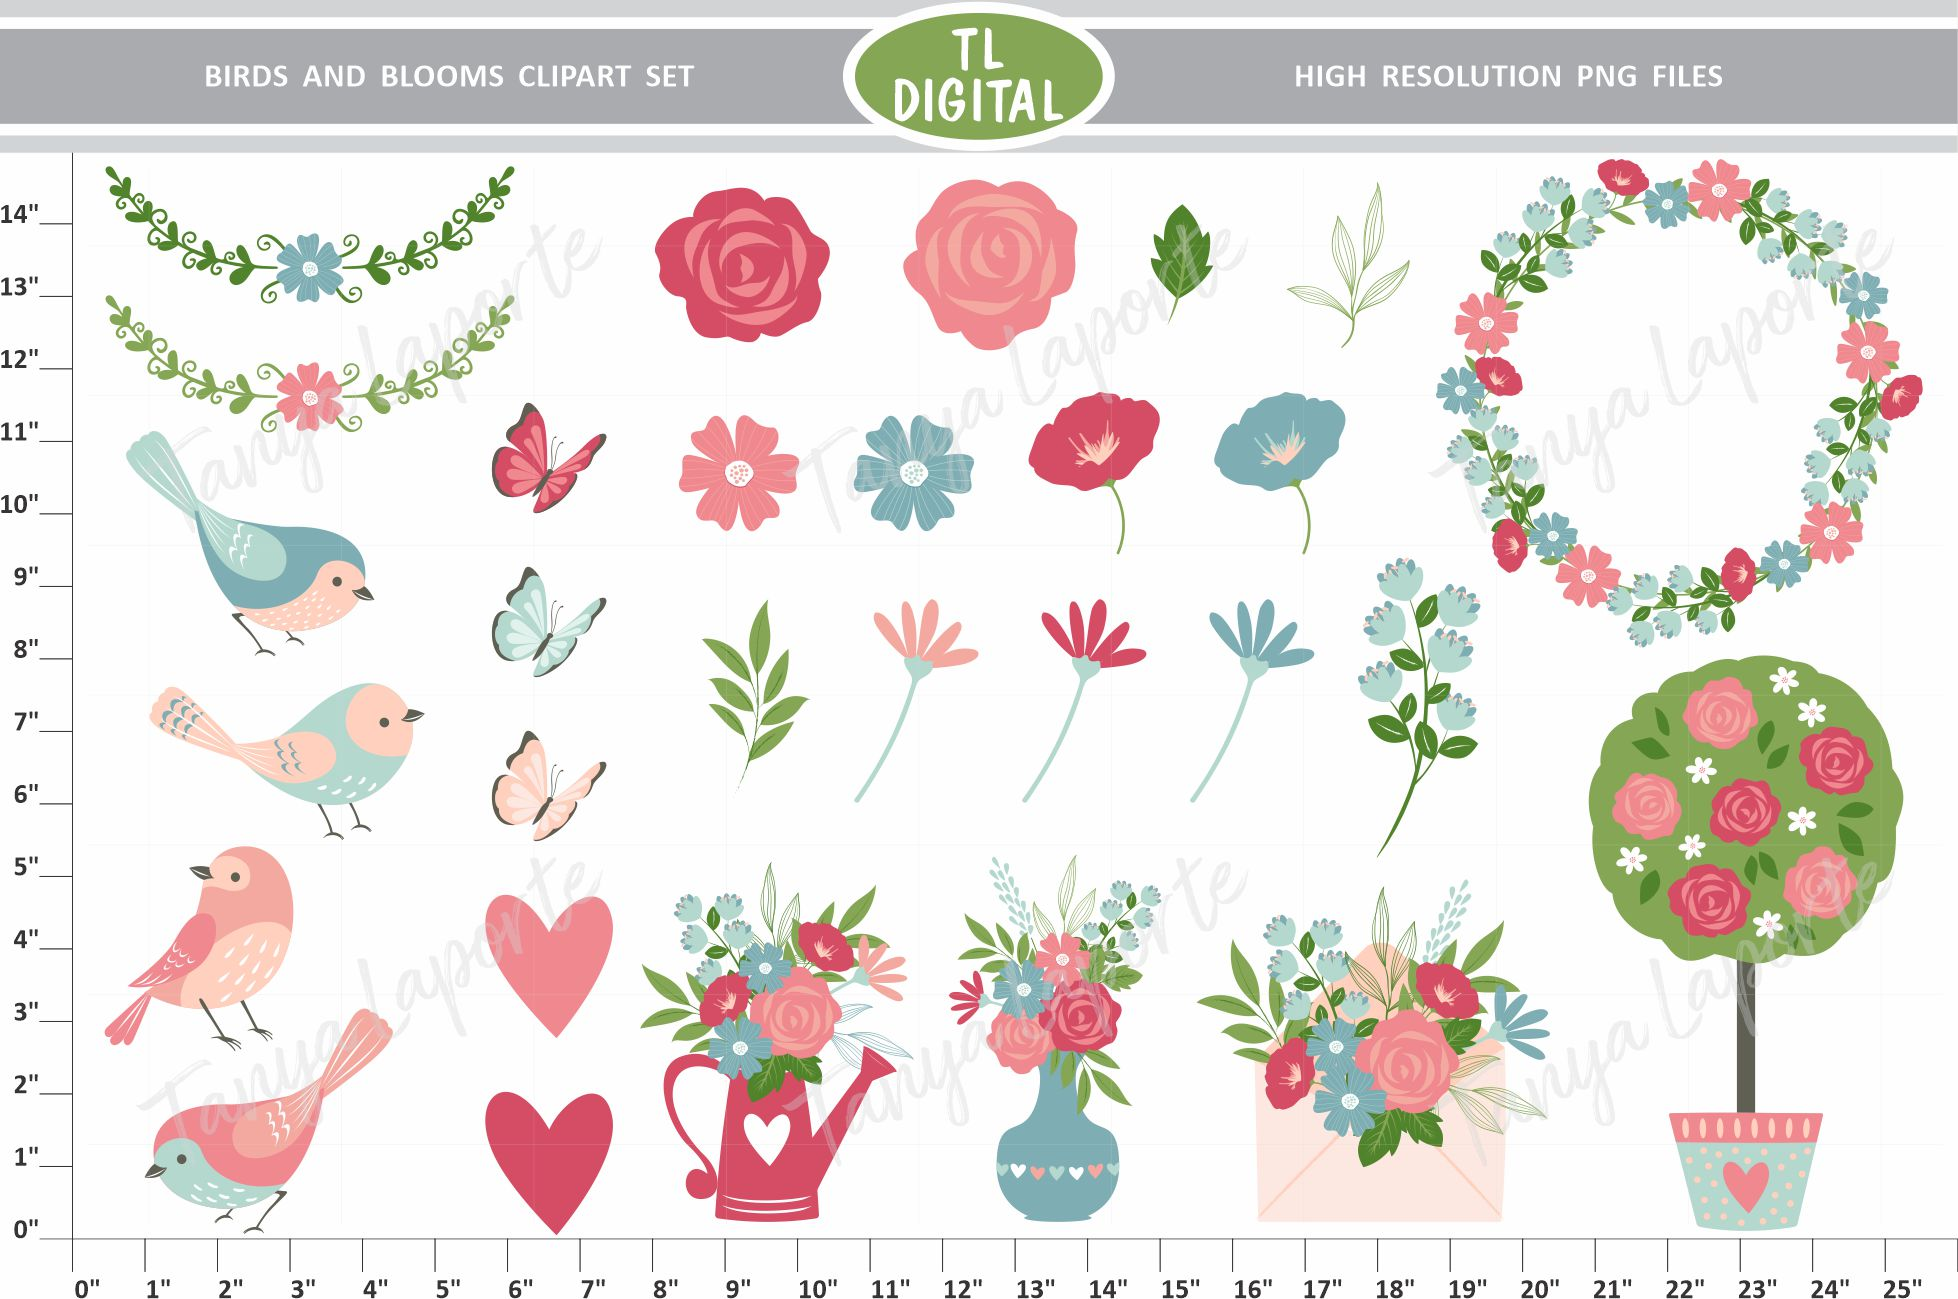 Blooms clipart picture free download Birds and Bloom Clipart Set picture free download